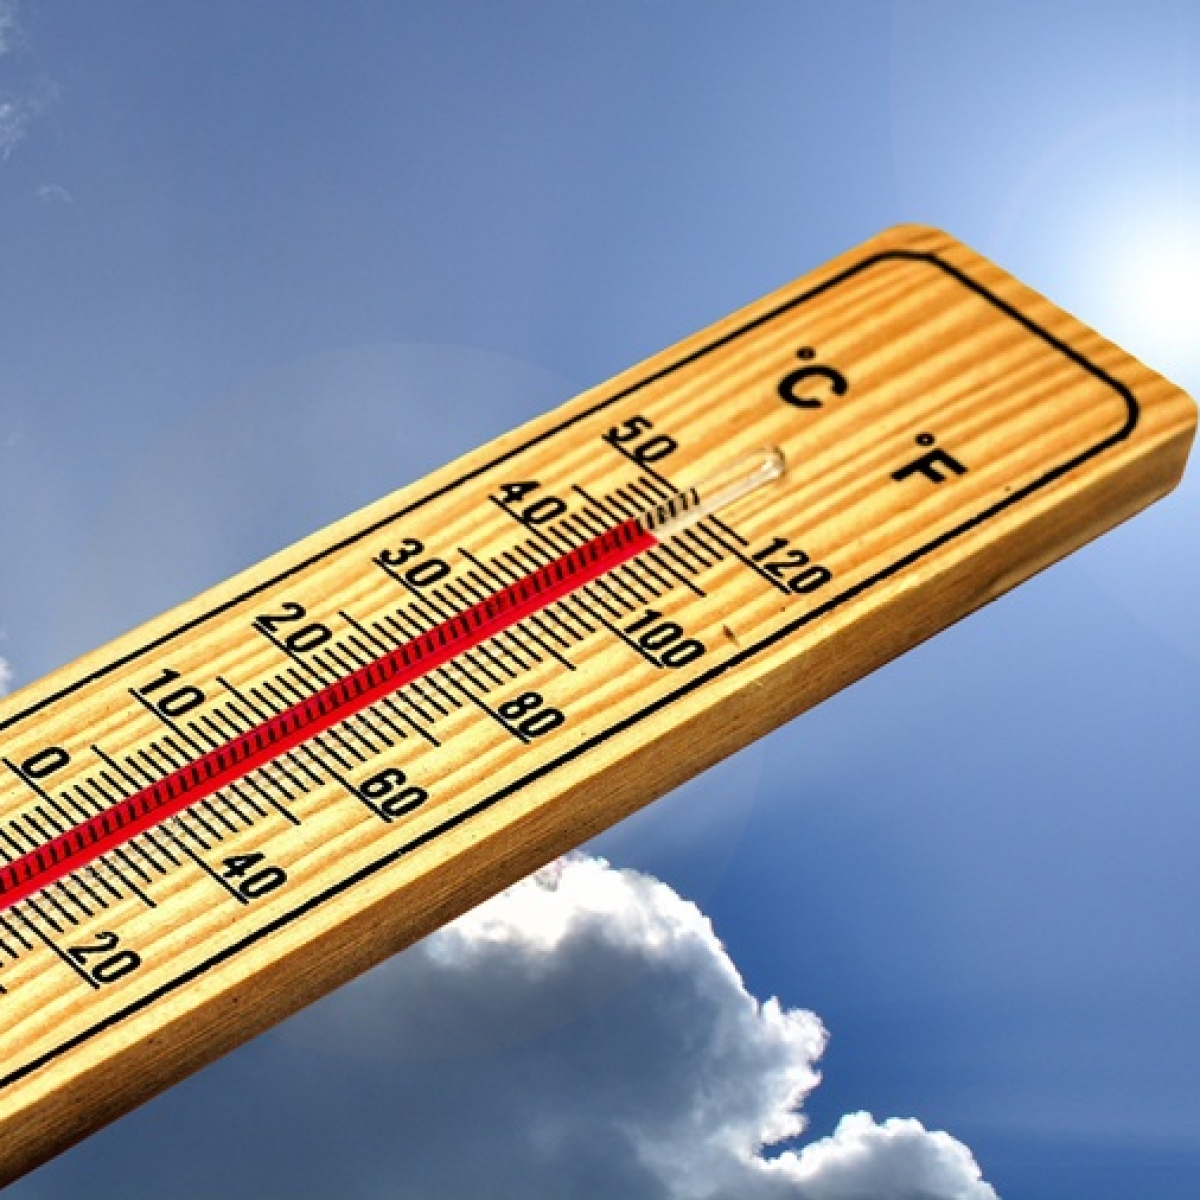 Mumbai Weather Update: Brace yourself for some hot and humid climate as maximum temperature likely to rise to 38°C